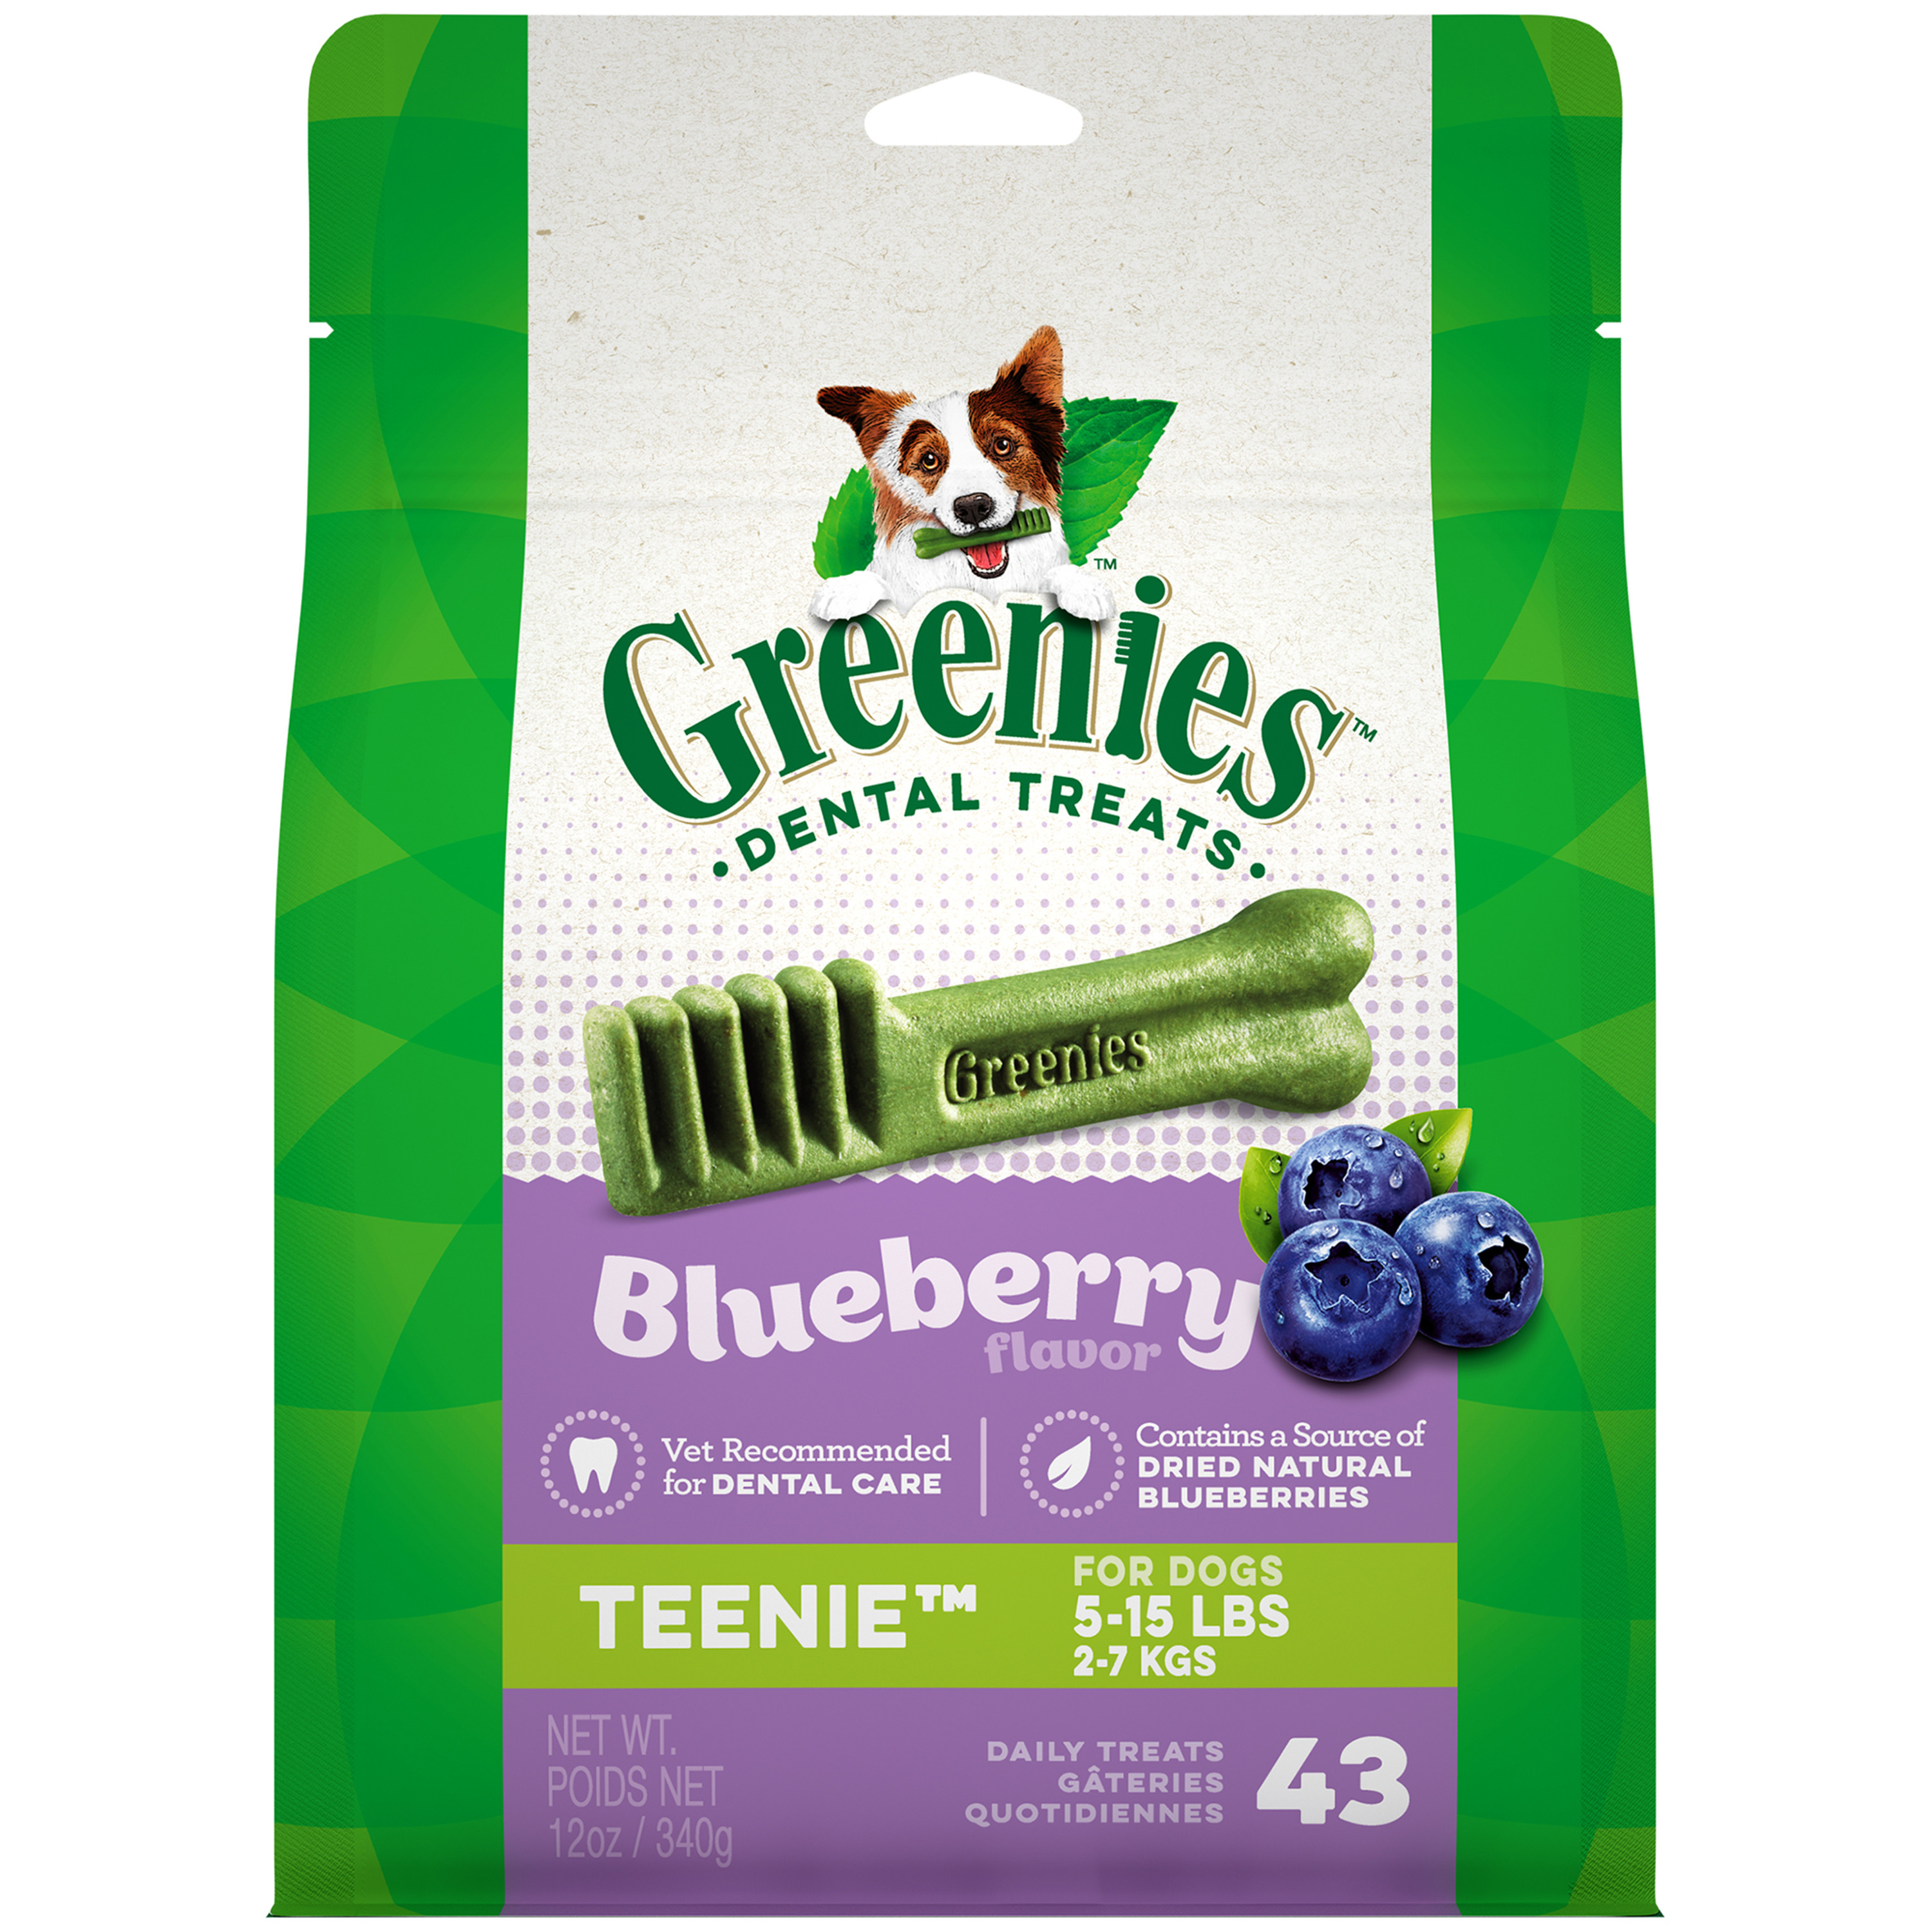 GREENIES Blueberry Flavor TEENIE Dental Dog Treats, 12 oz. Pack (43 Treats)